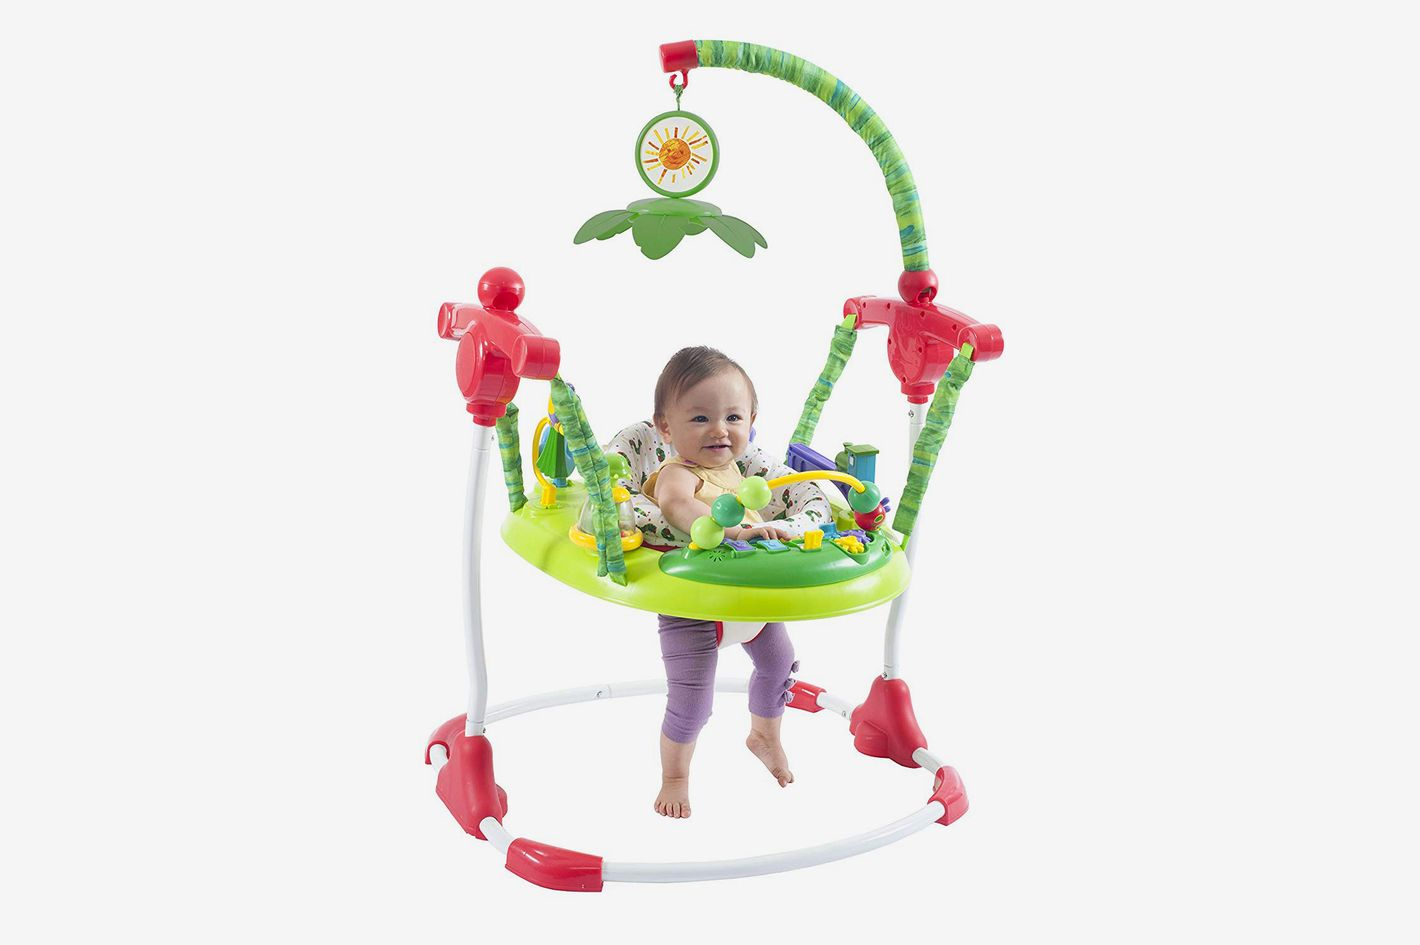 593d60b19 7 Best Baby Walker Alternatives